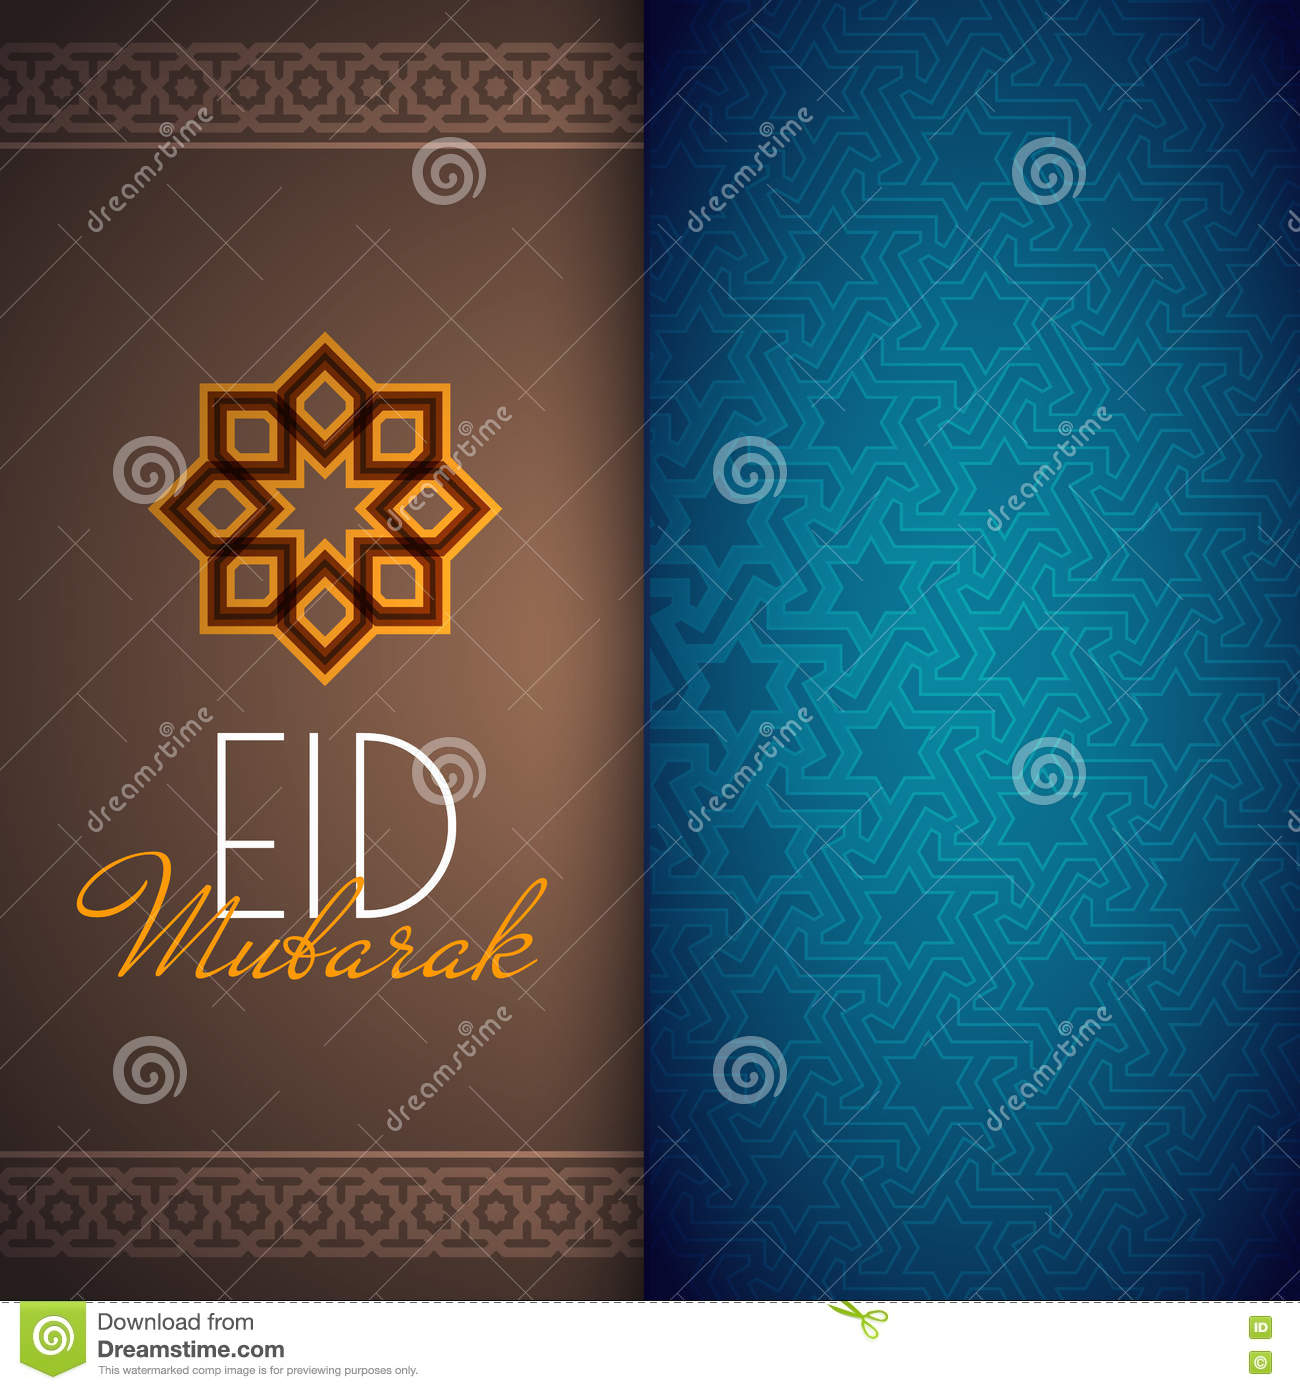 eid mubarak greeting card or background with arabic pattern stock vector illustration of adha advertising 72984308 dreamstime com